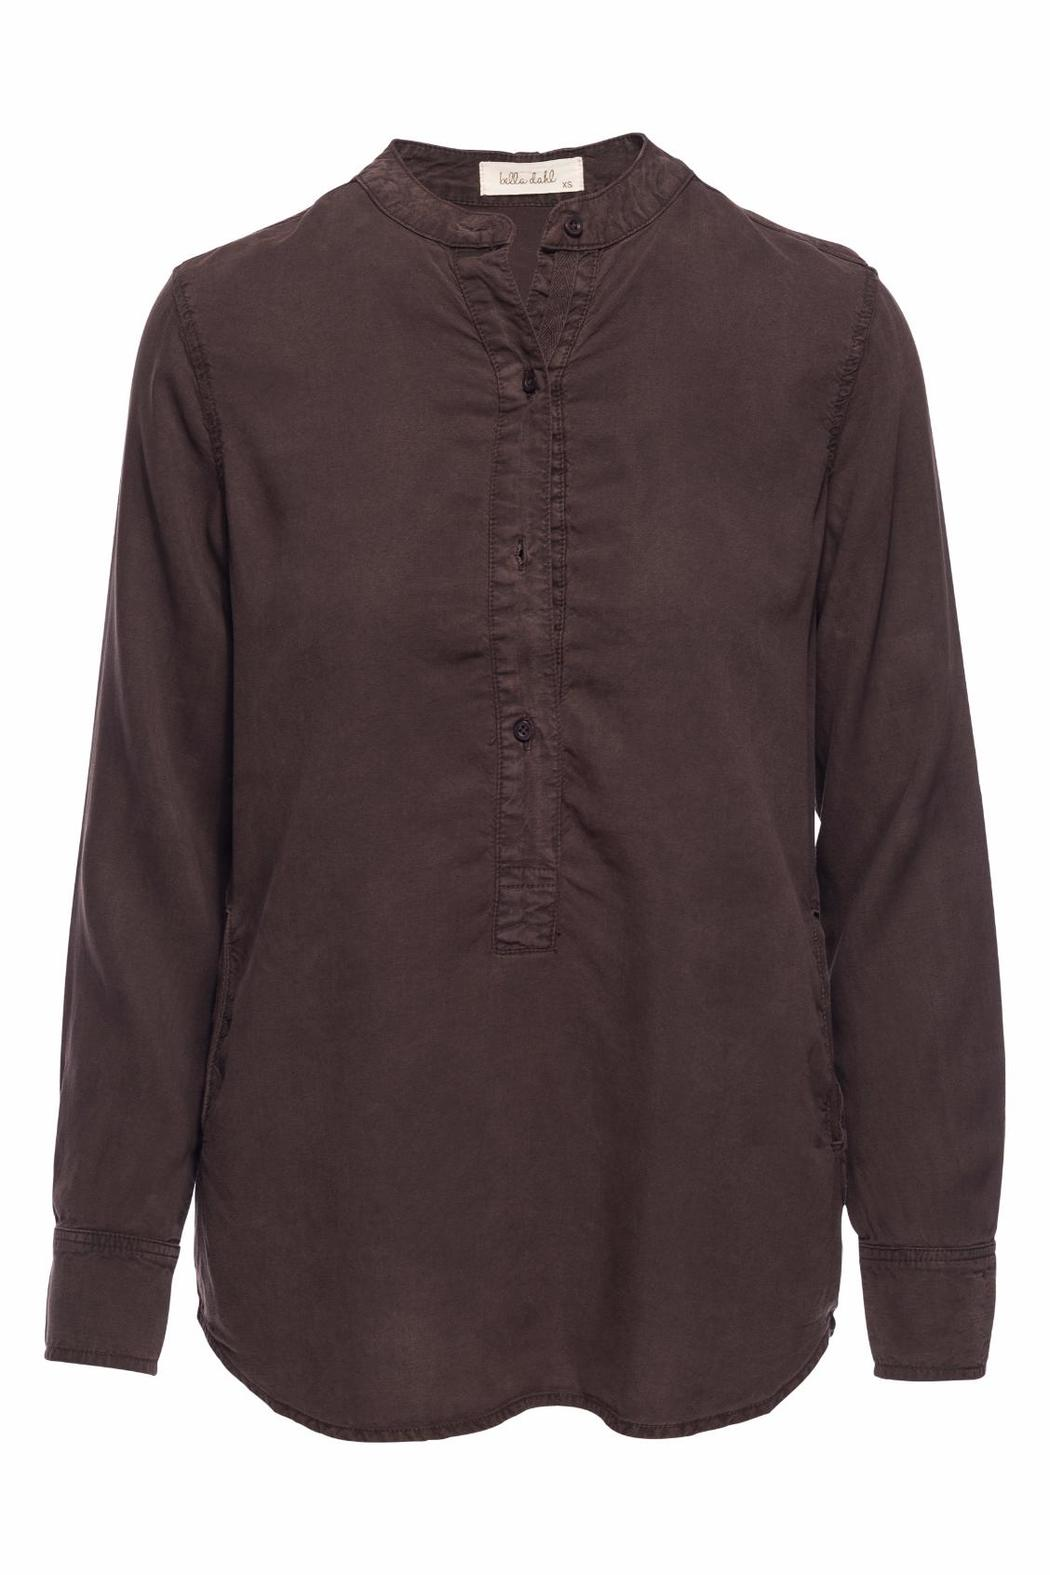 Bella Dahl Dark Roast Tunic - Main Image